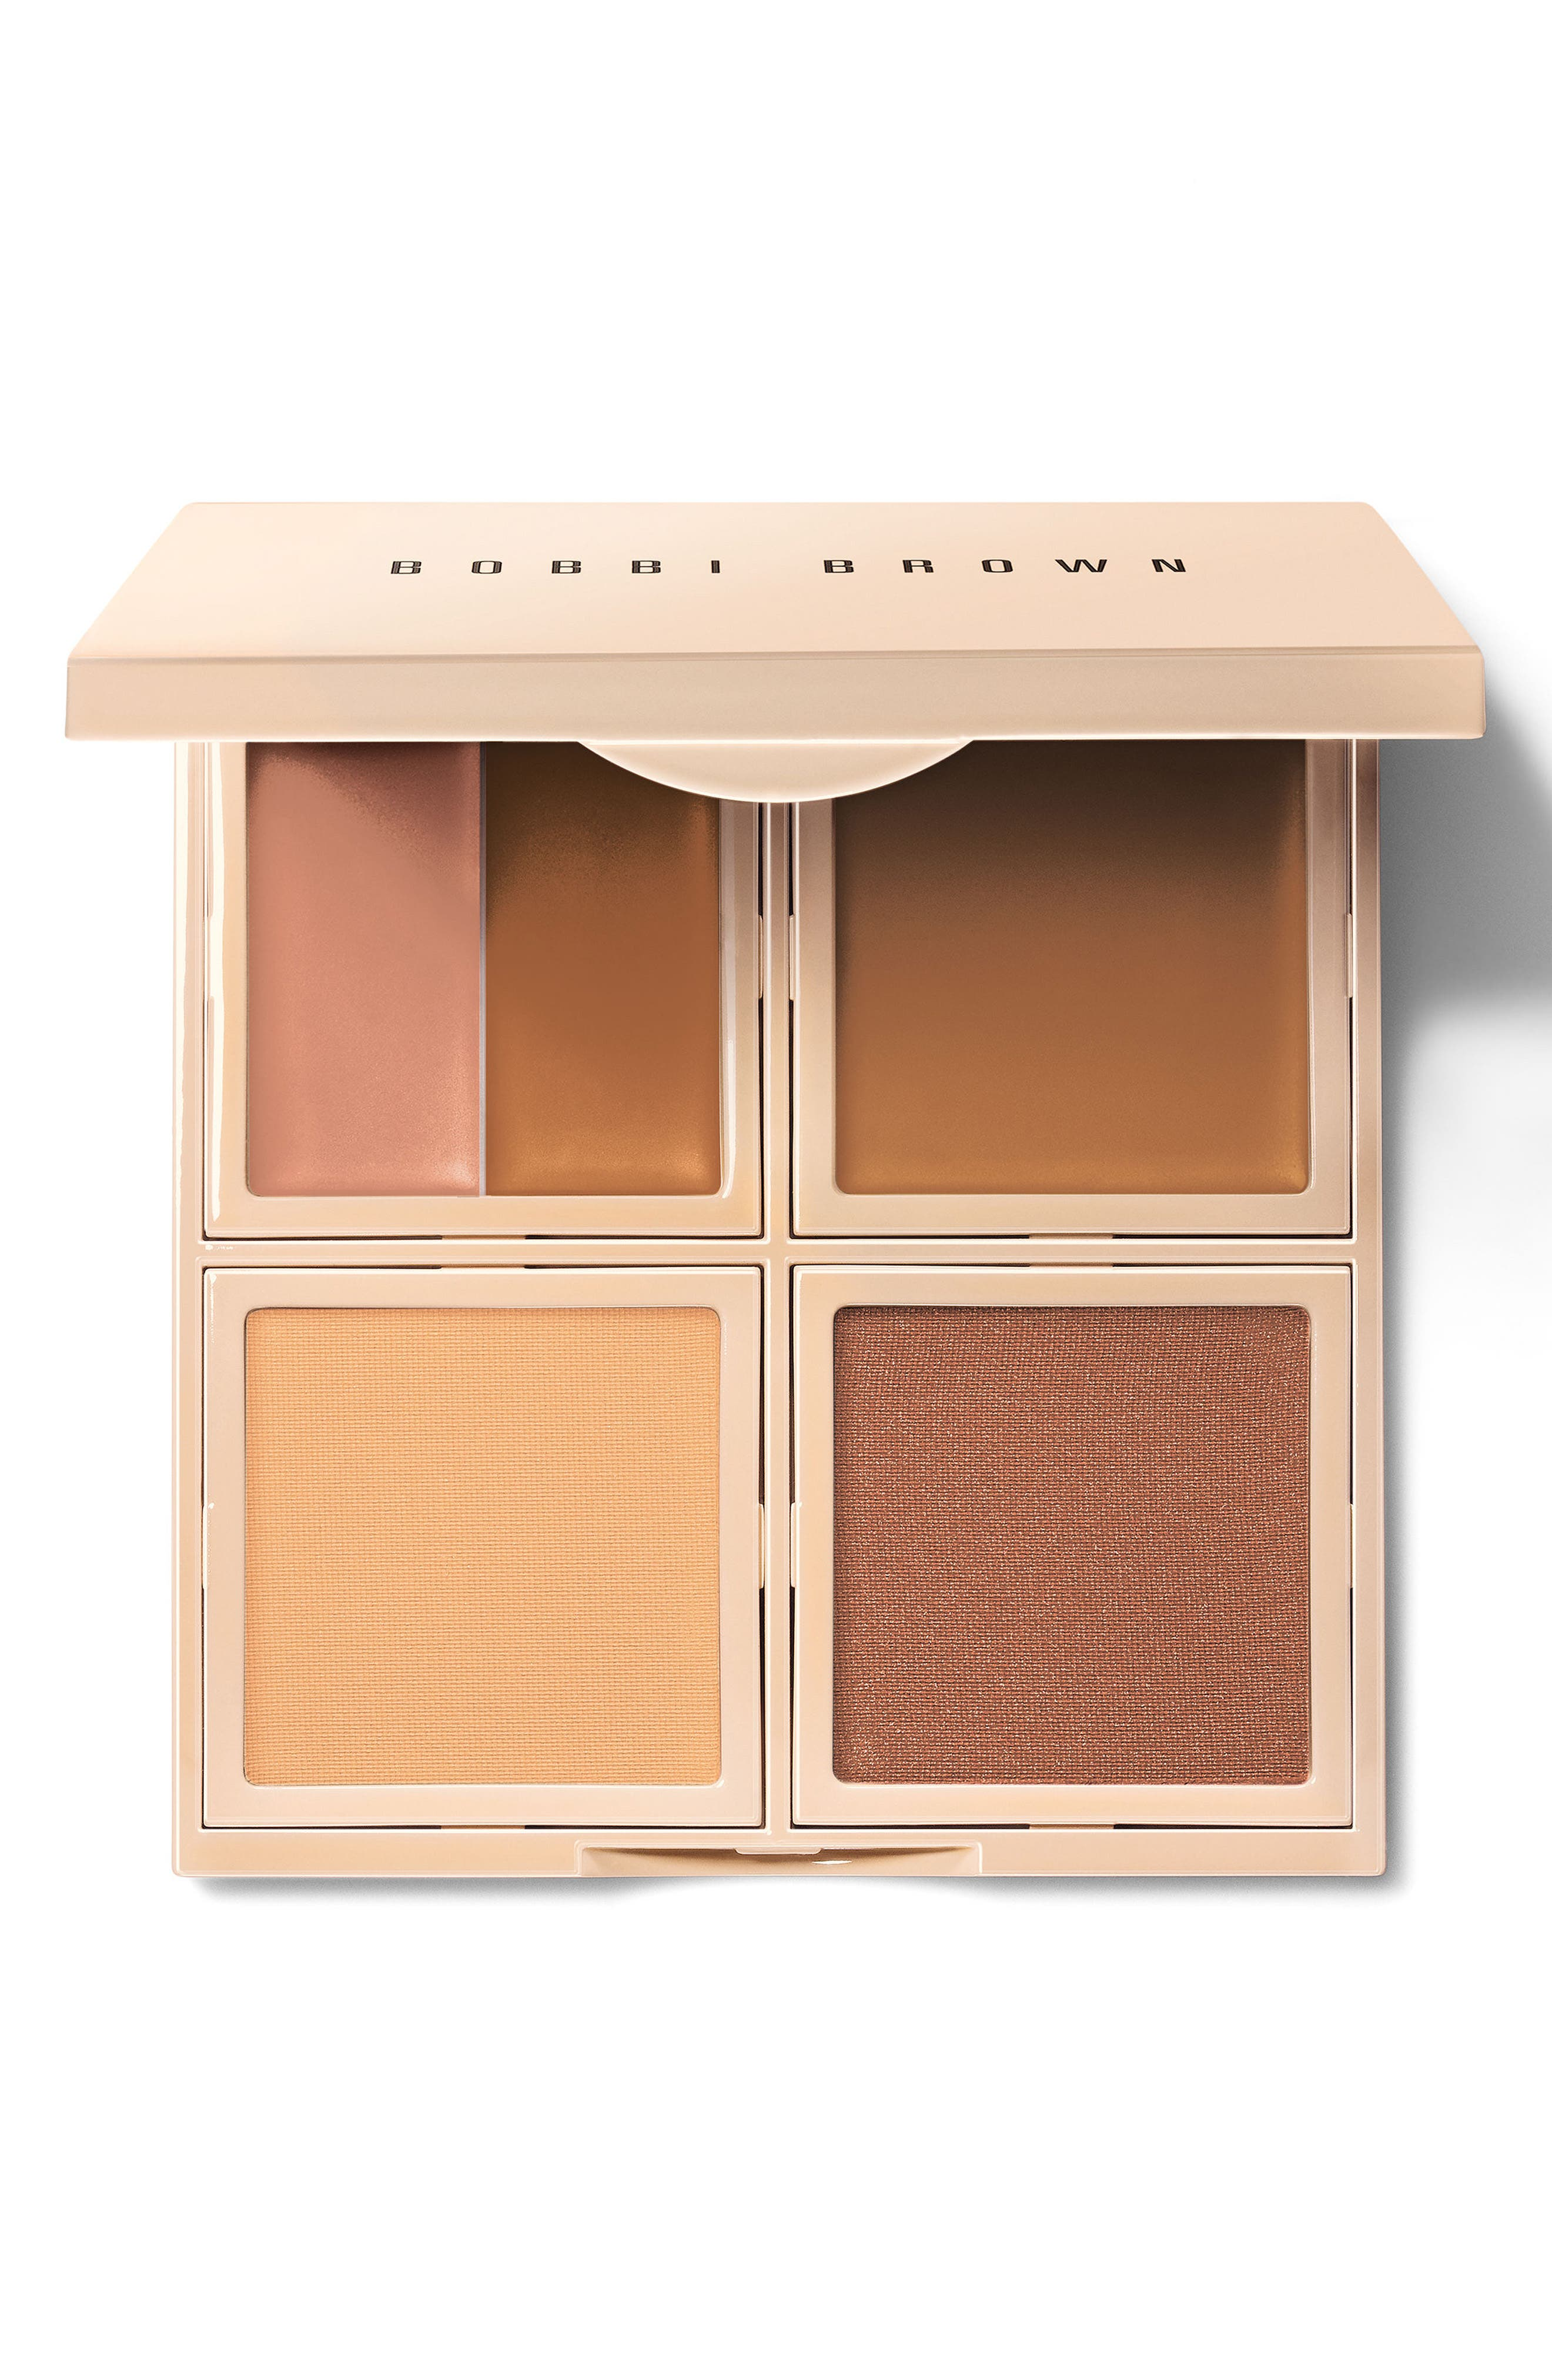 Bobbi Brown Essential 5-in-1 Face Palette (Nordstrom Exclusive) ($135 Value)